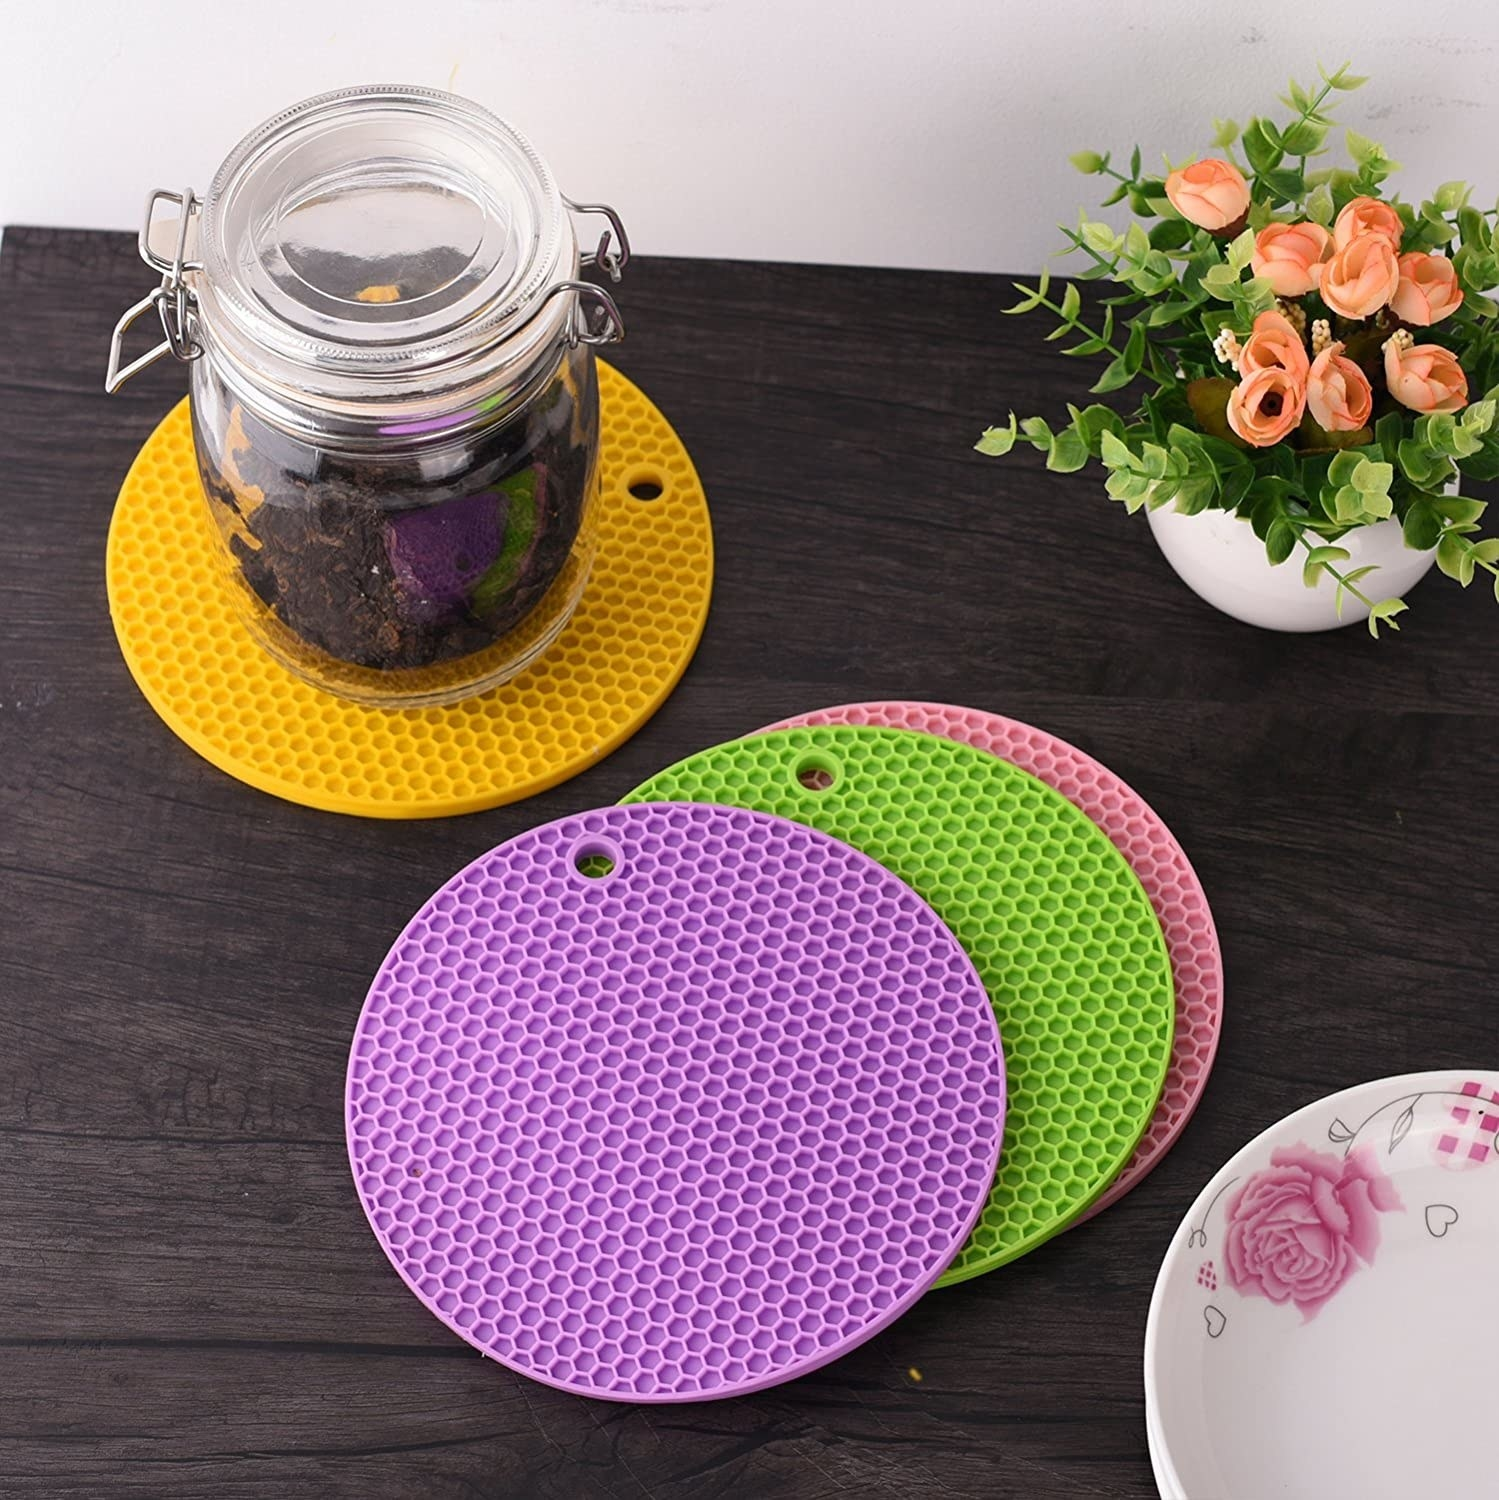 A set of four circular trivet mats in purple, green, pink, and yellow